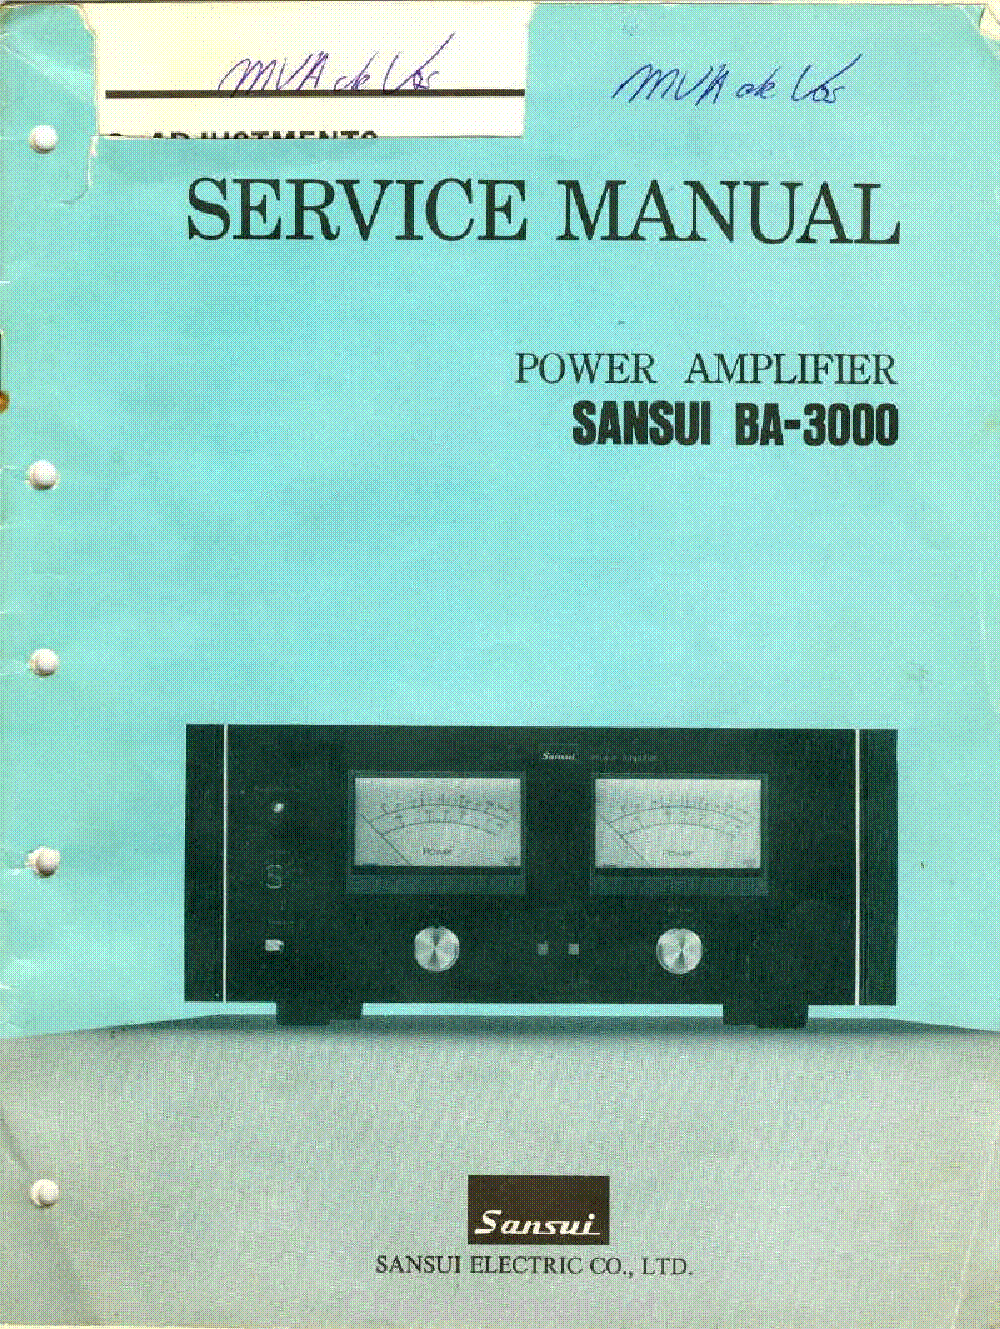 sansui rz 3700av 5700av 7700av service manual download schematics rh elektrotanya com